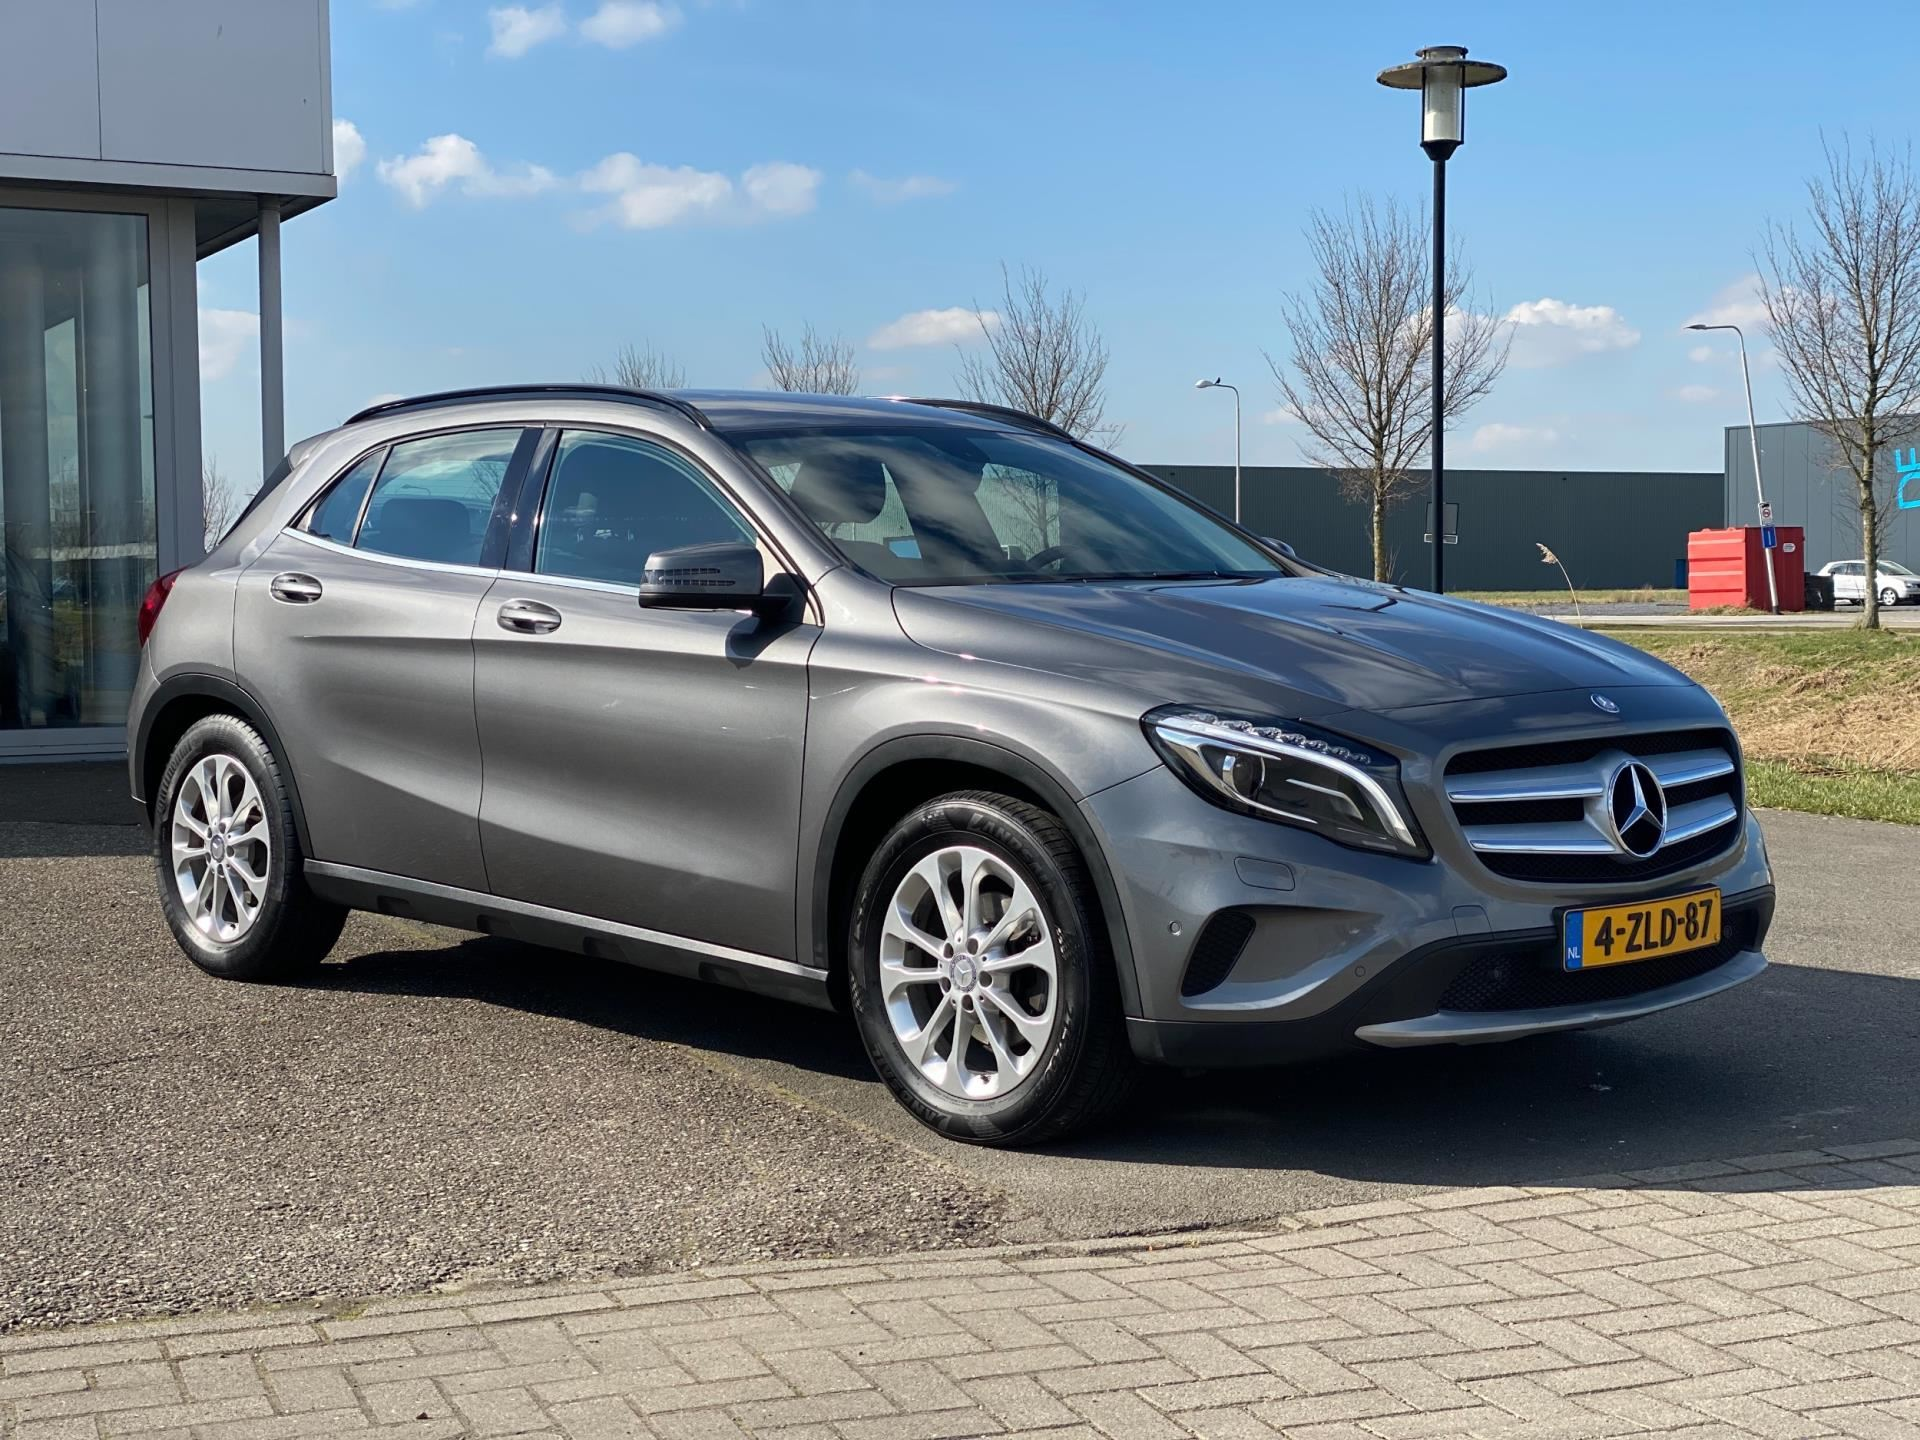 Mercedes-Benz GLA-klasse occasion - Garage Casteels